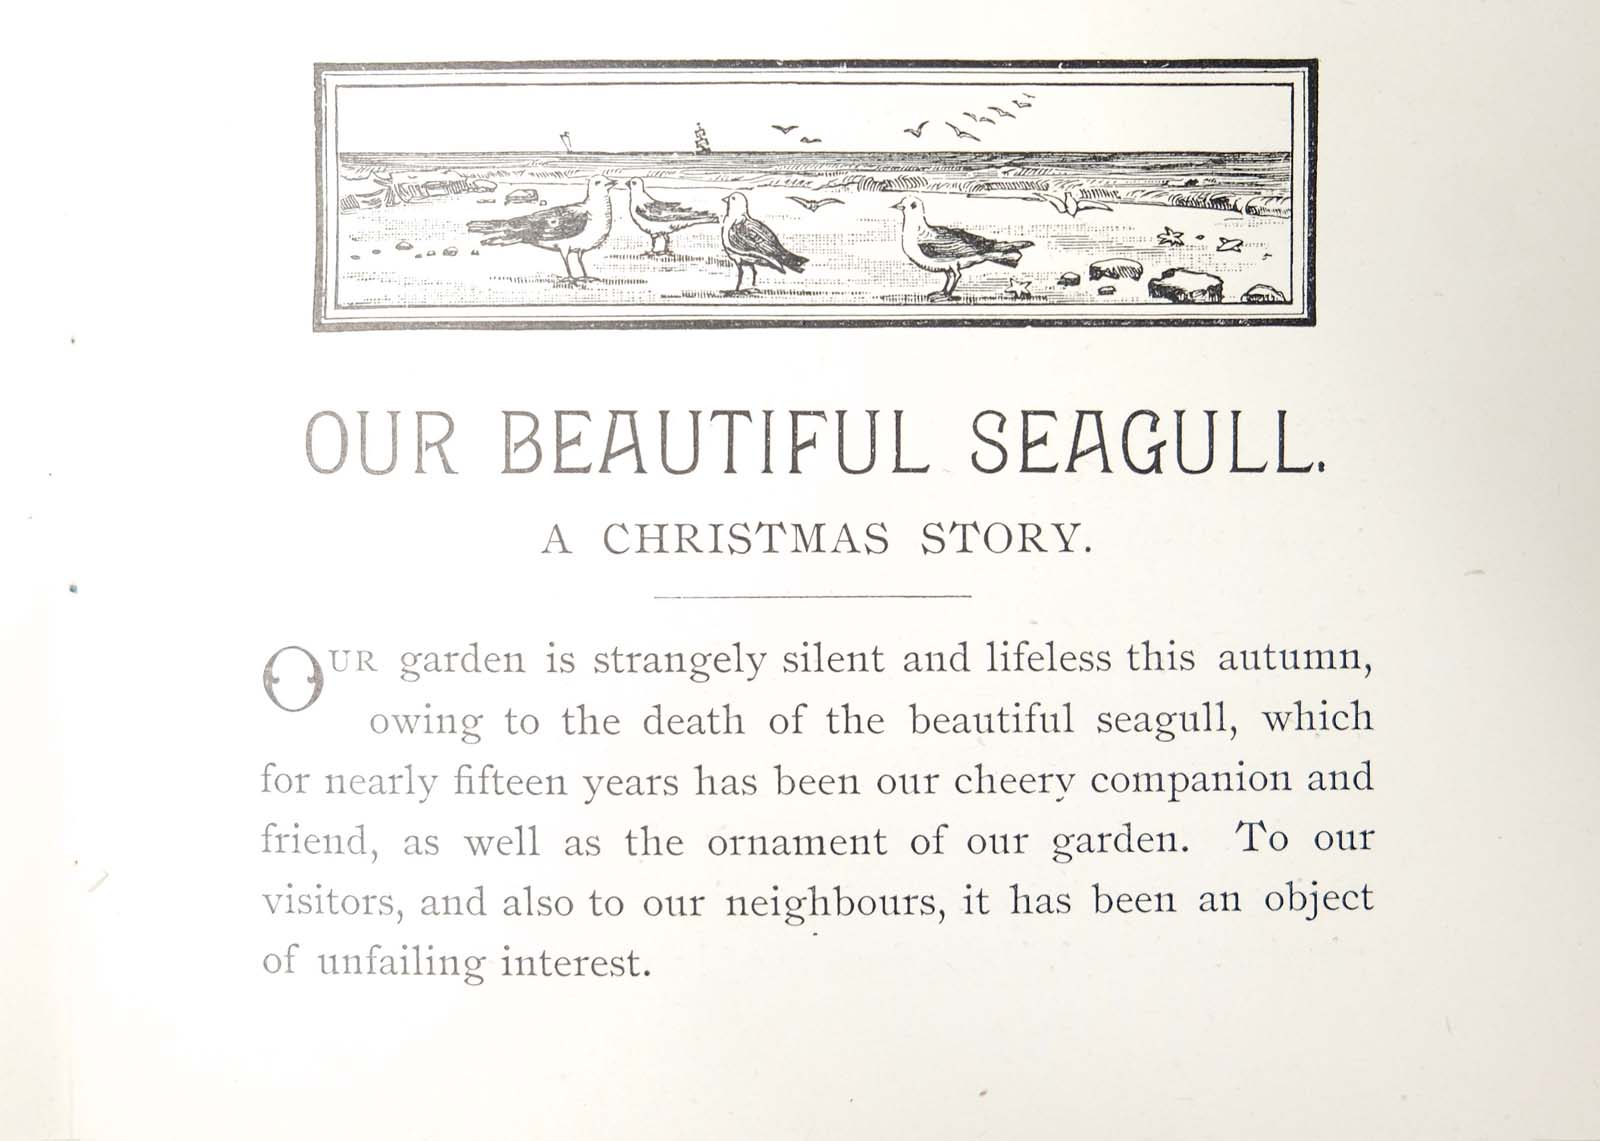 a printed page from a pamphlet about a seagull